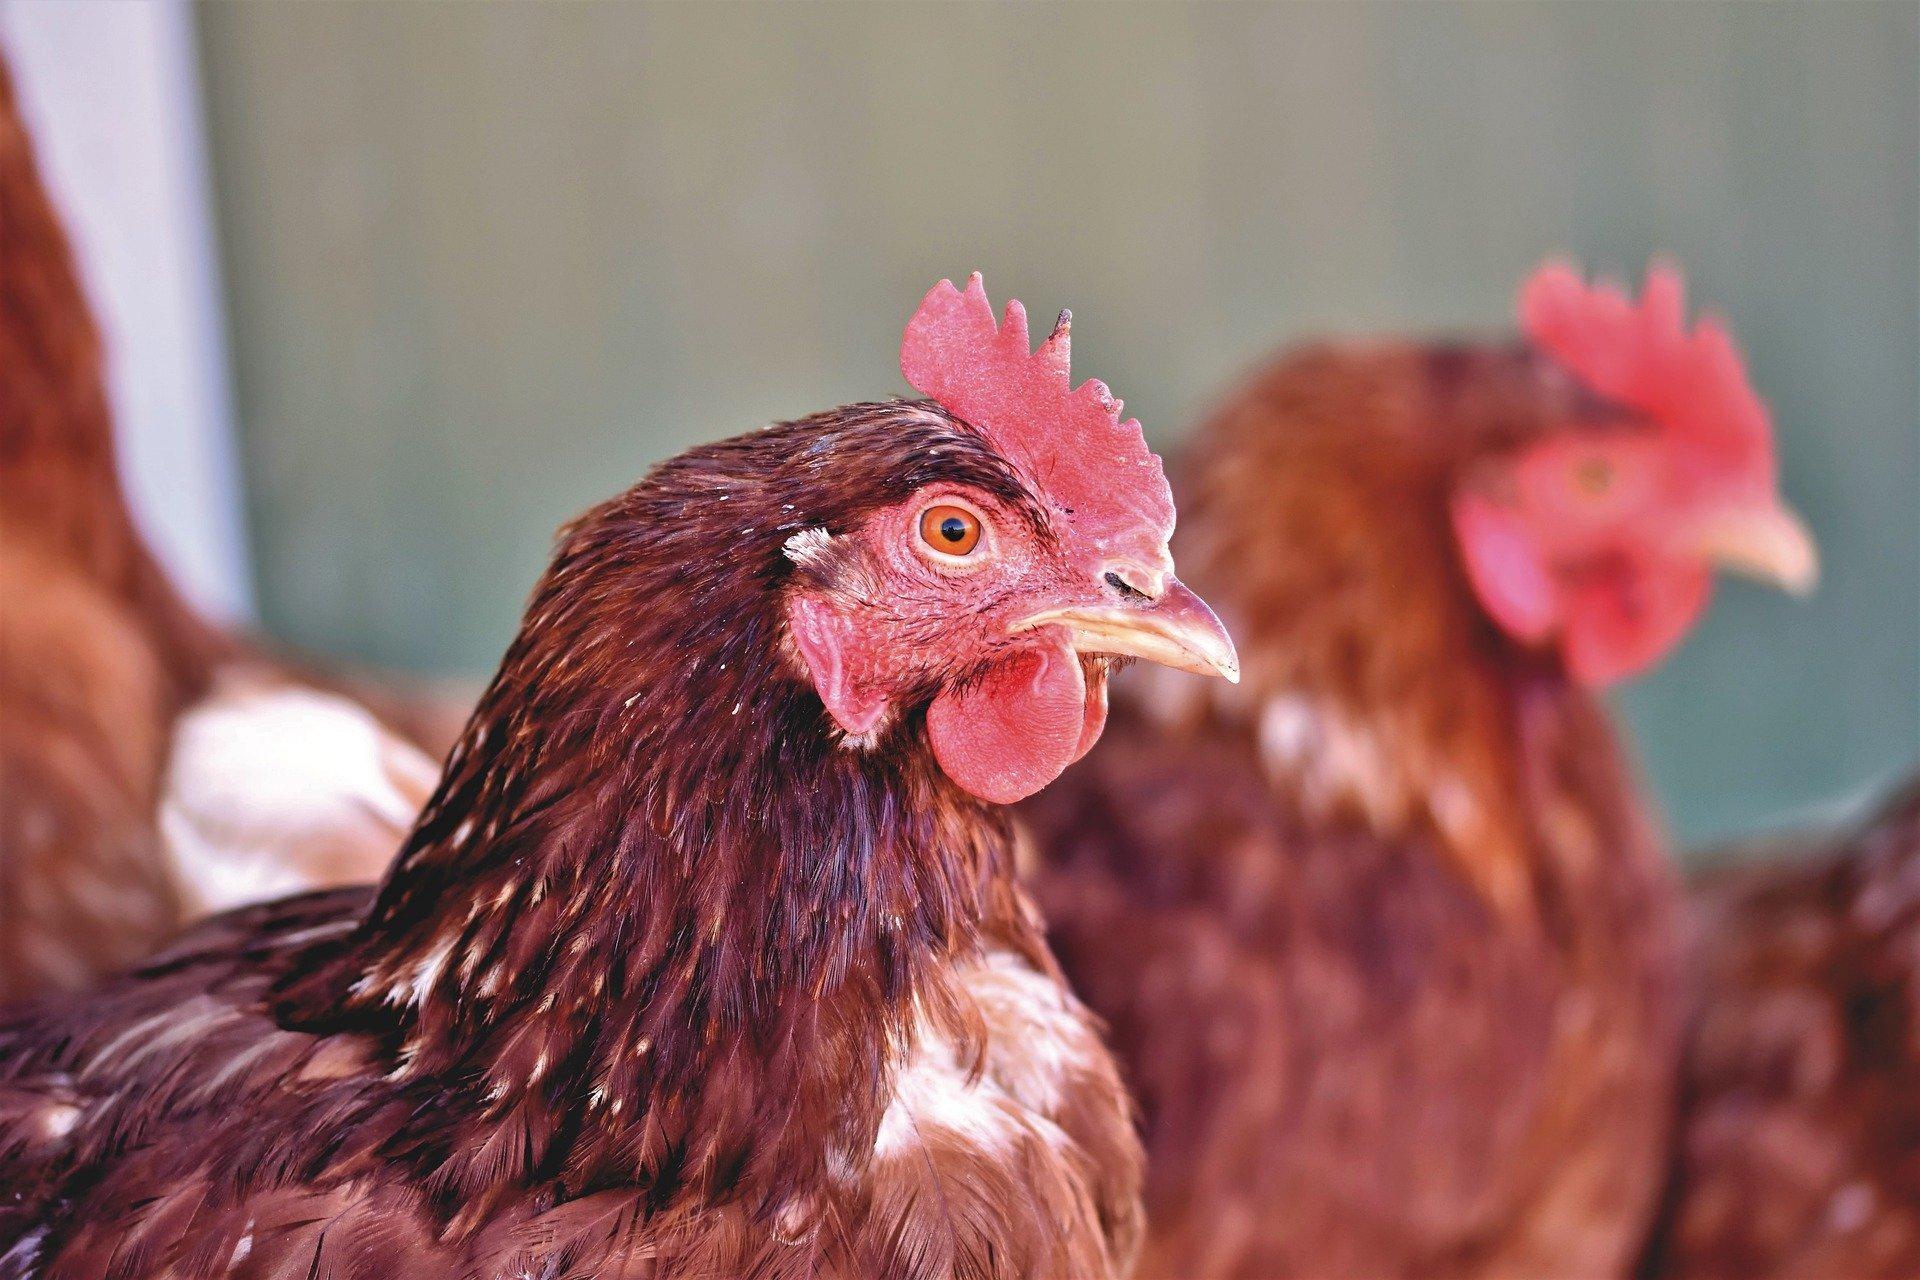 Biosecurity: Improving the Long-Term Sustainability of the Poultry Industries